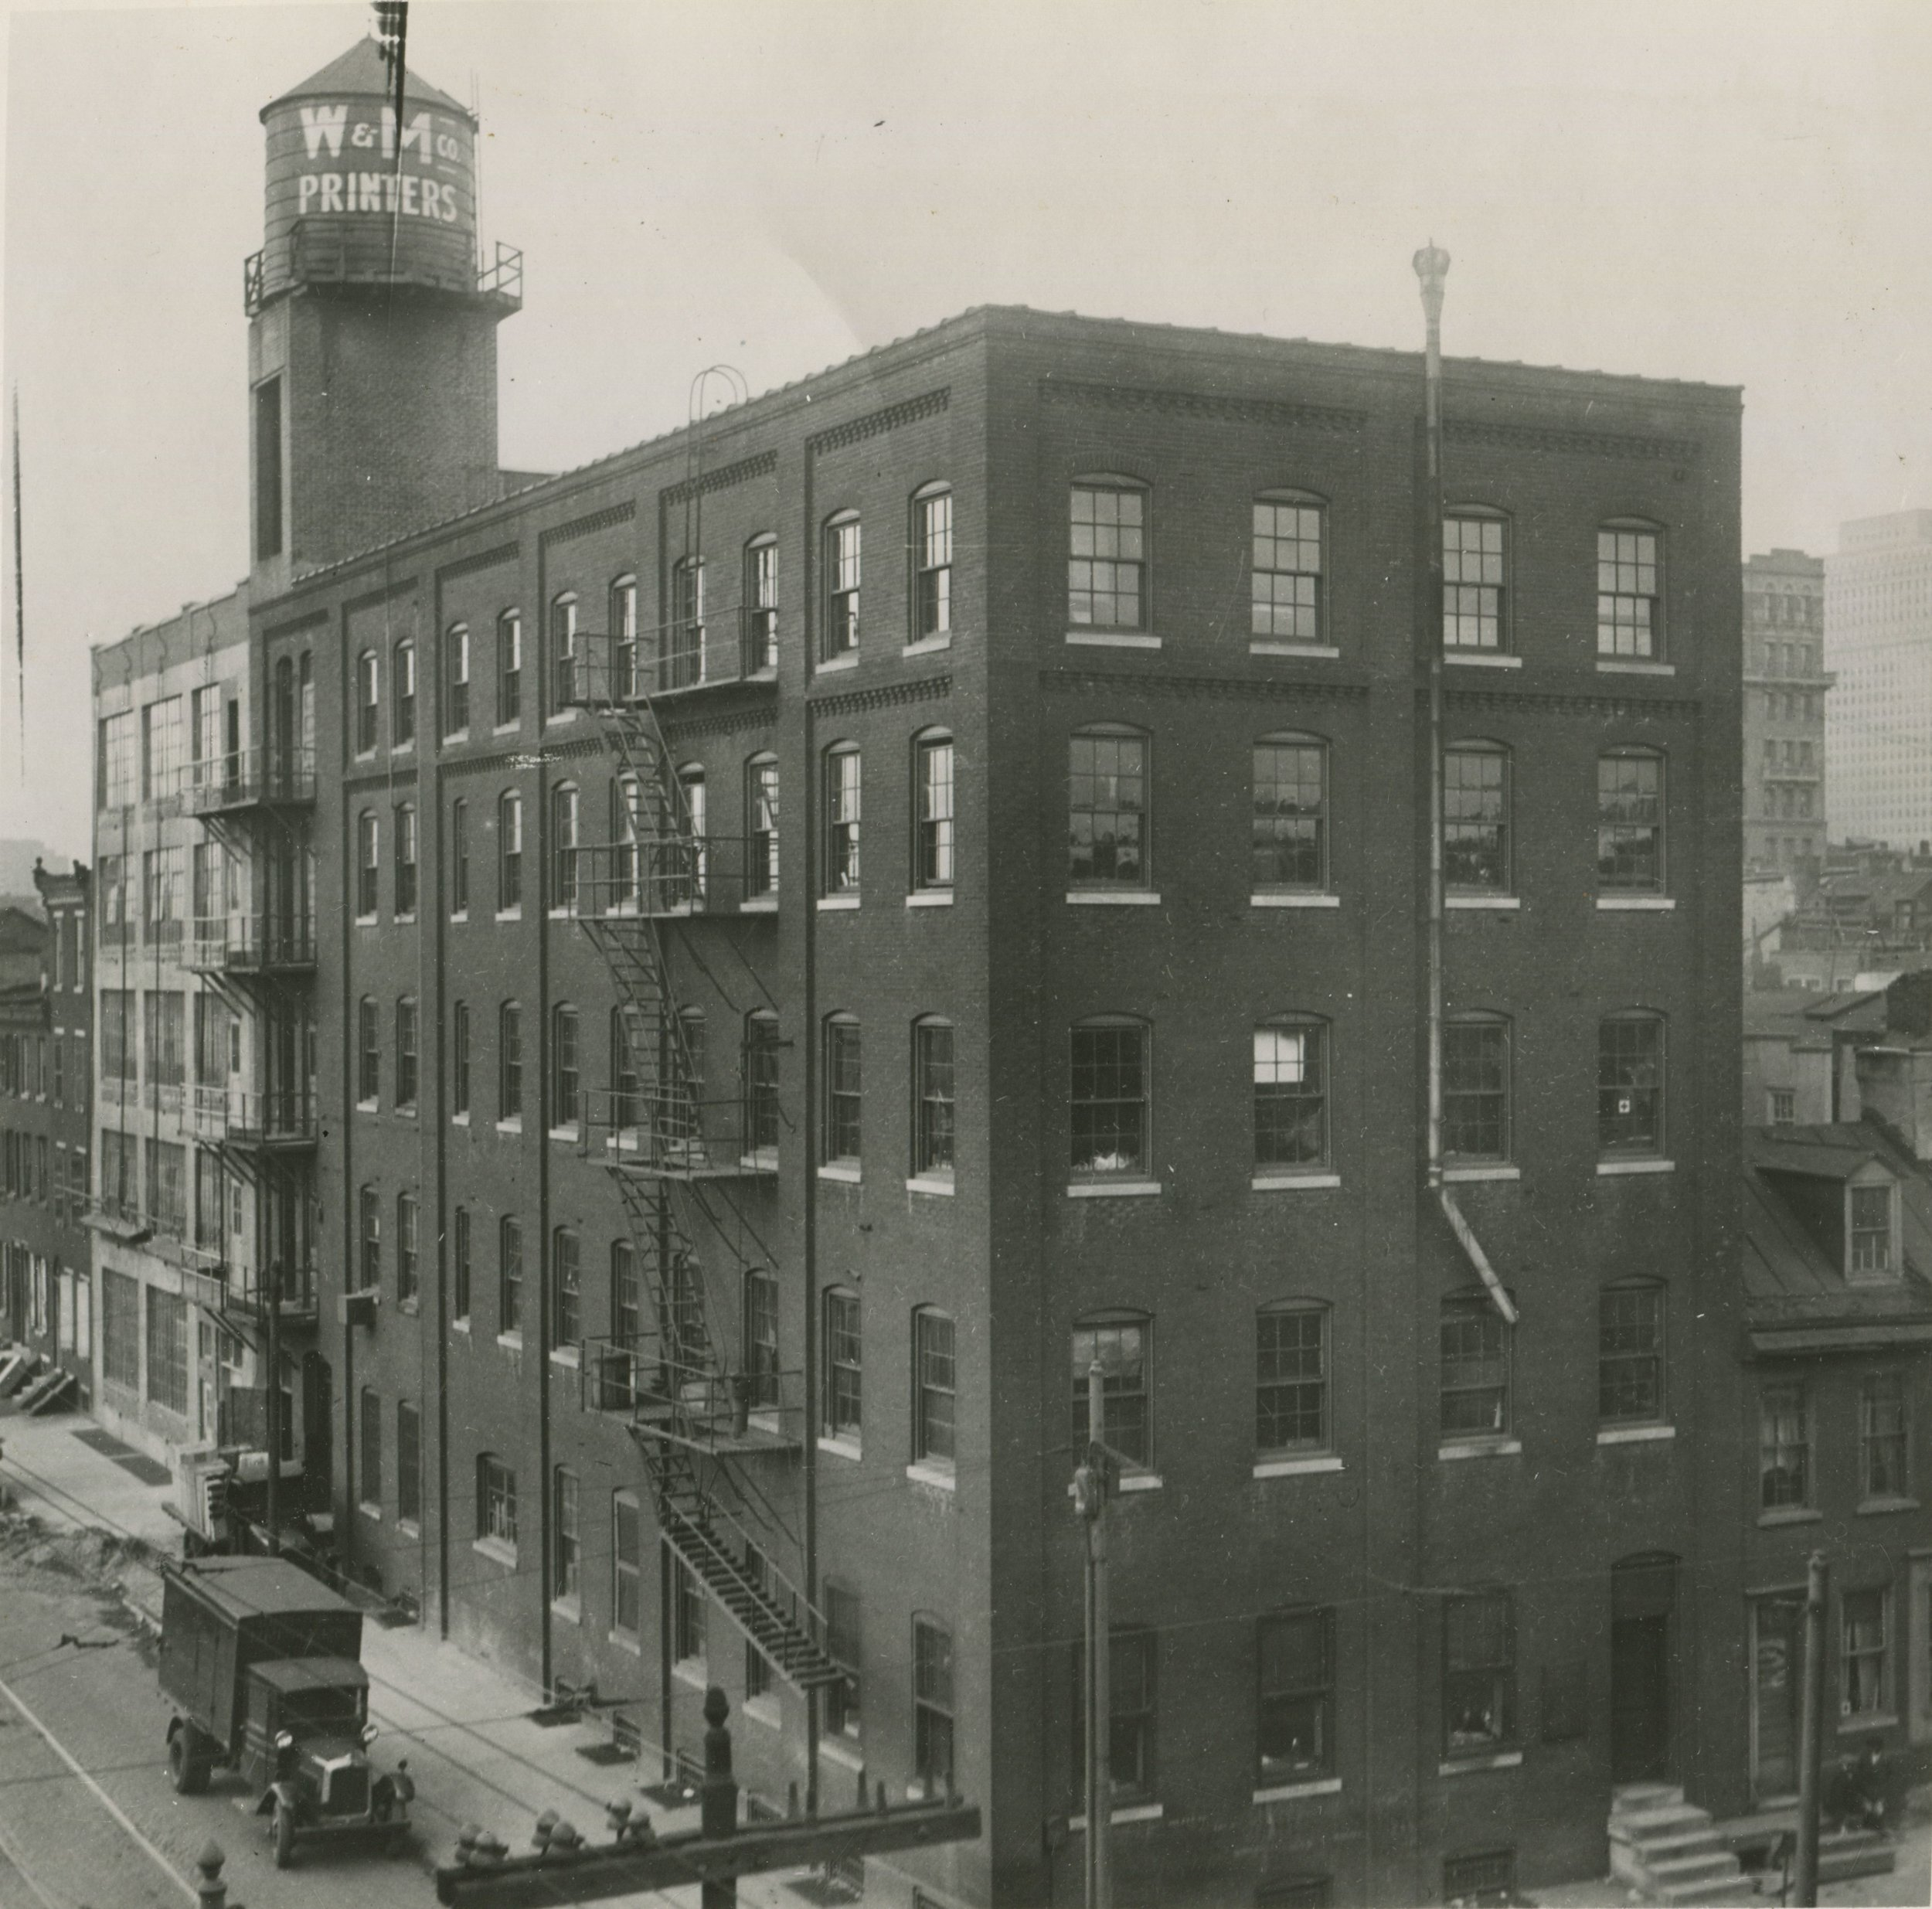 10th and Lombard, after additions and extra floor added